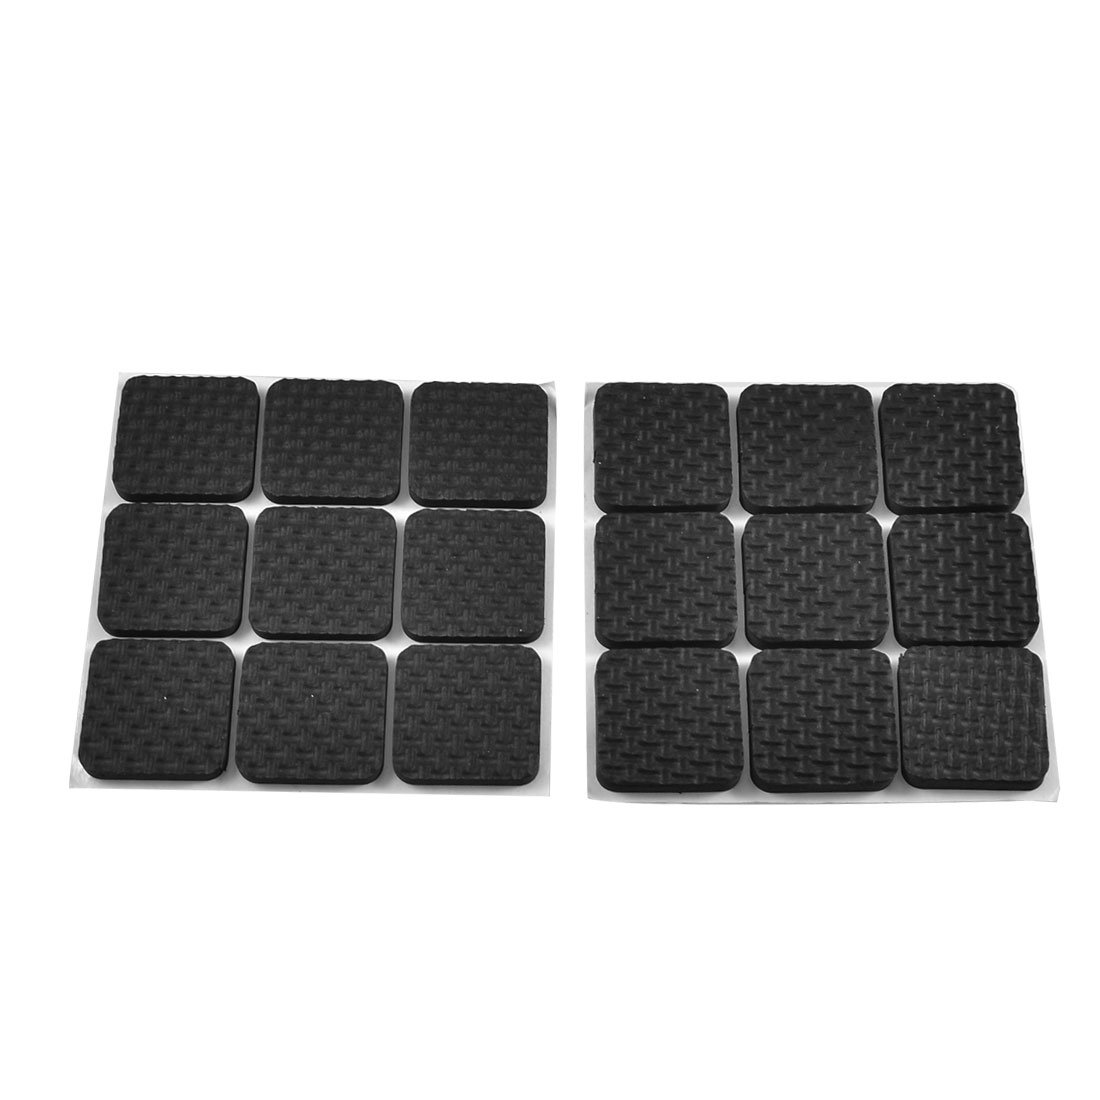 18 Pcs Square Shaped Black Adhesive Protection Pad for Chair Leg